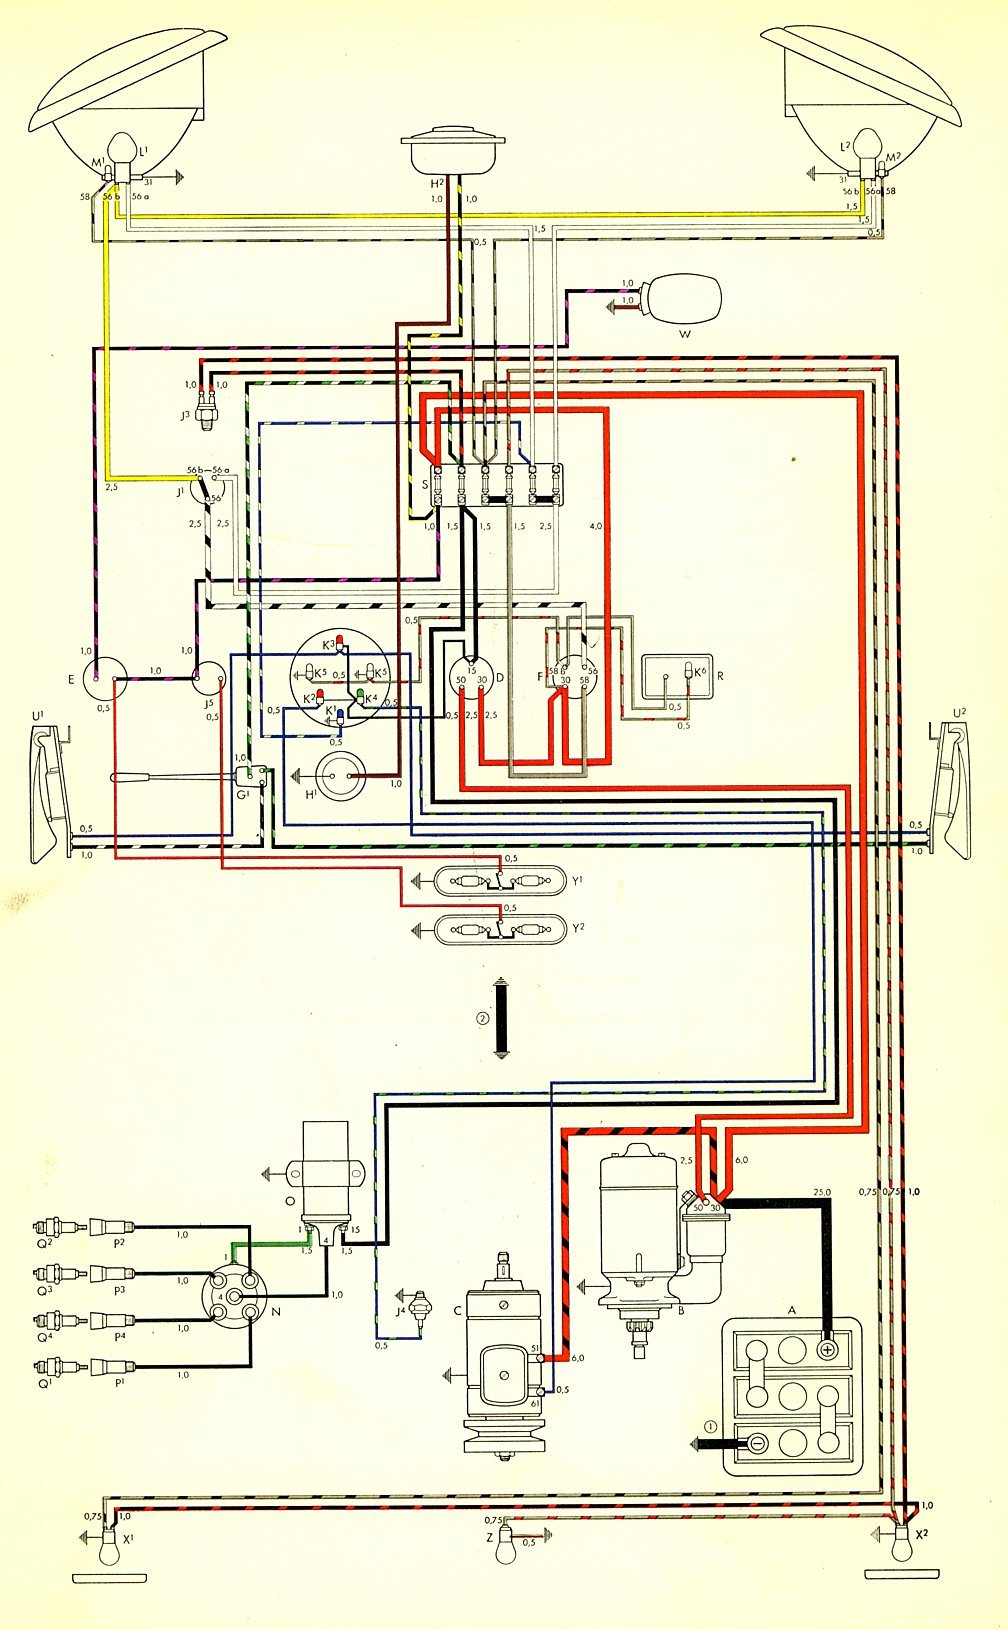 1975 Impala Wiring Diagram Vw Bus Electrical Schematic Books Of Thesamba Com Type 2 Diagrams Rh